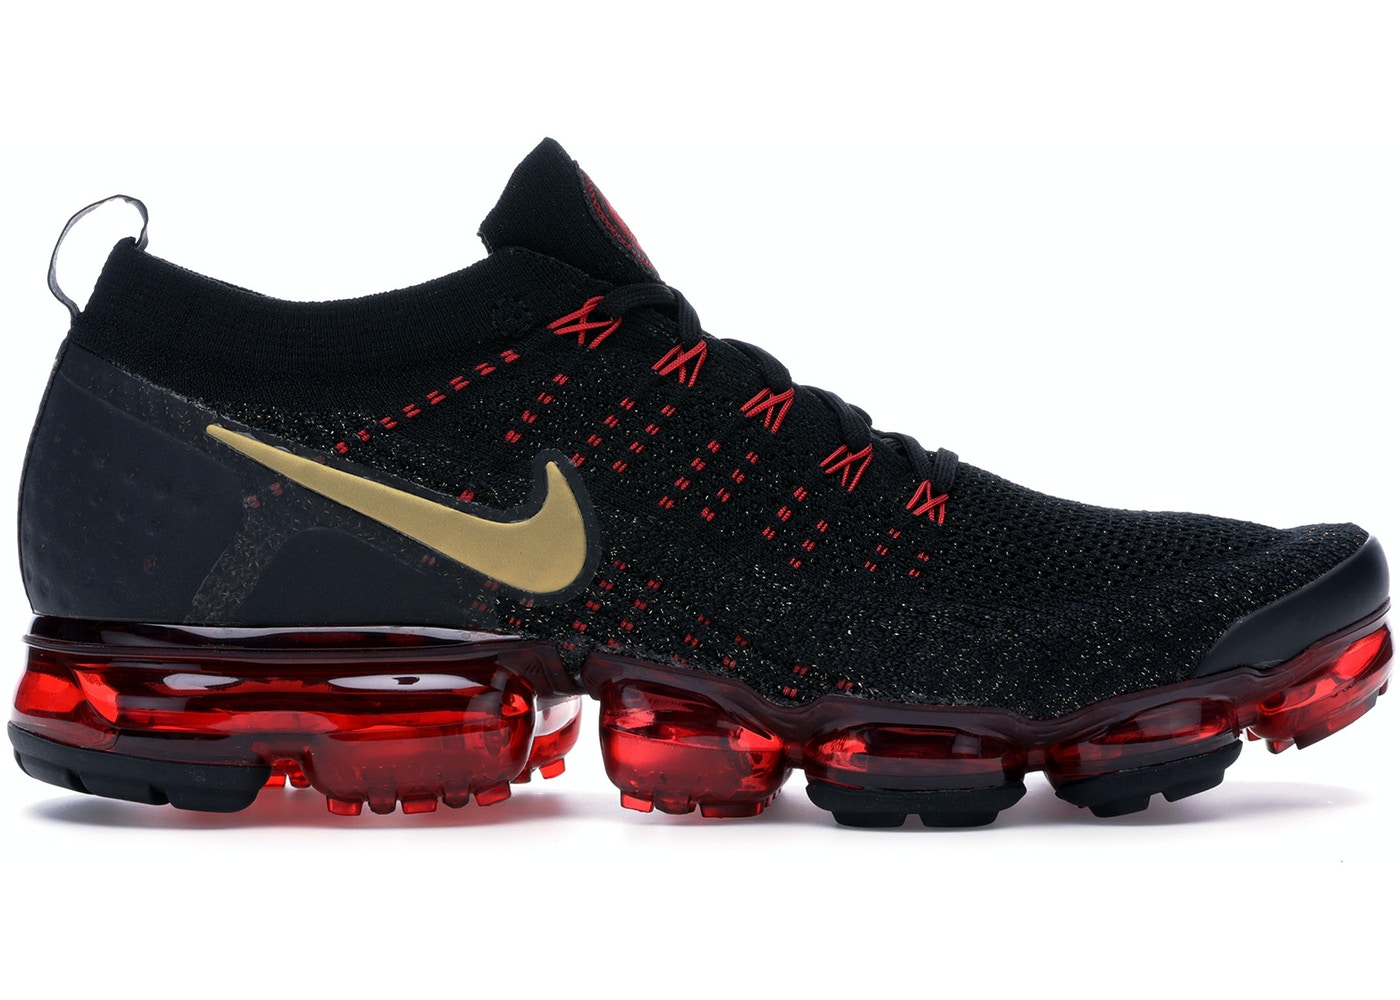 outlet store ae1cb a1b9f Buy Nike Air Max VaporMax Shoes   Deadstock Sneakers